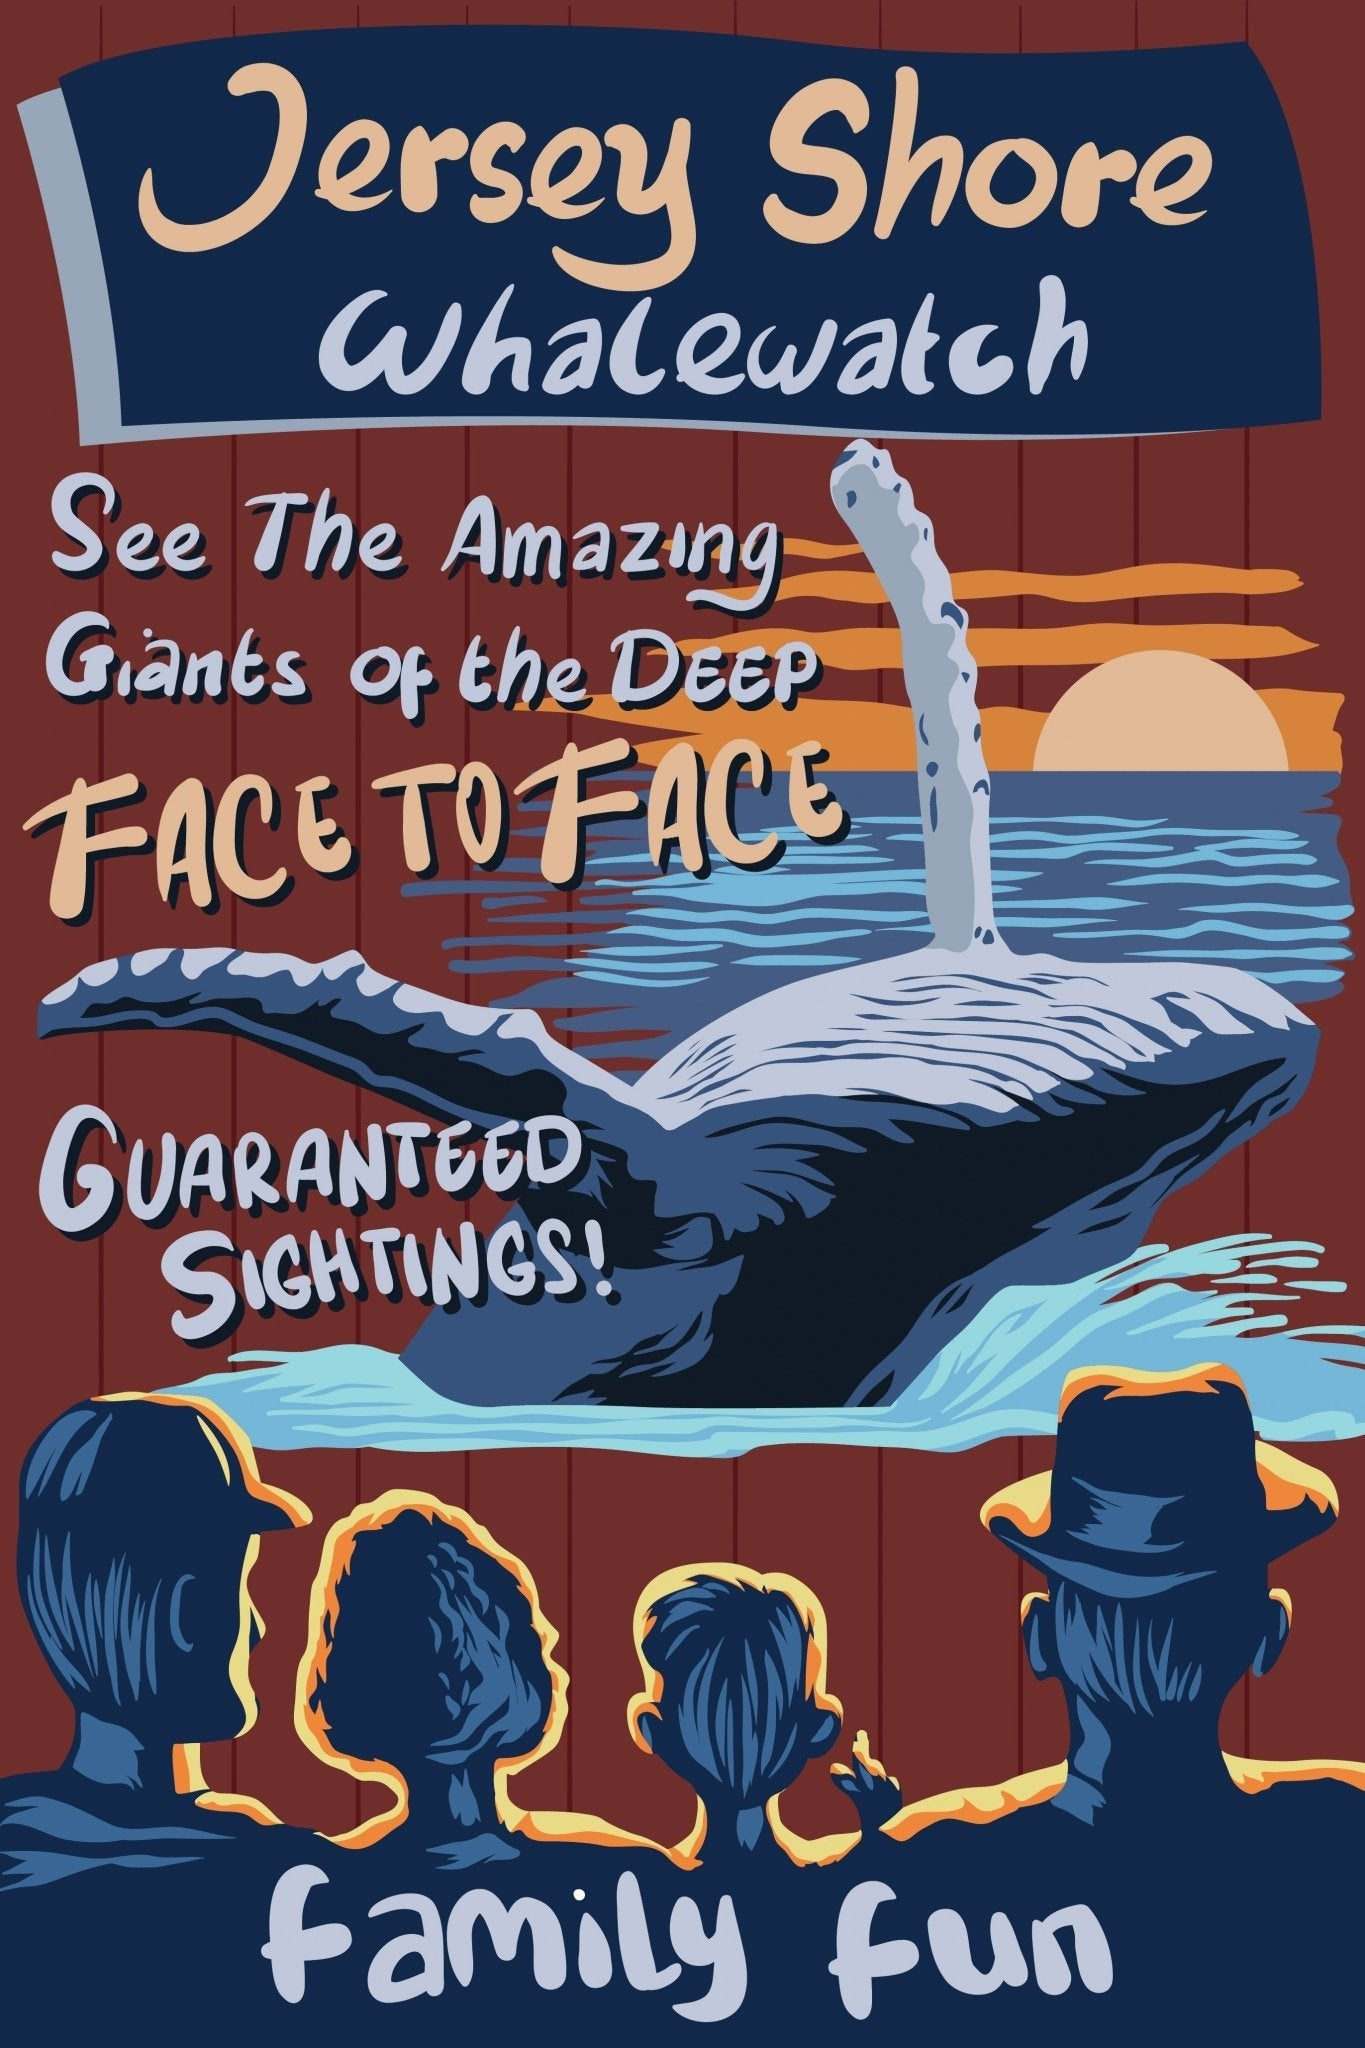 Jersey Shore Whale Watch Poster Retro - Bill McKim Photography -Jersey Shore whale watch tours